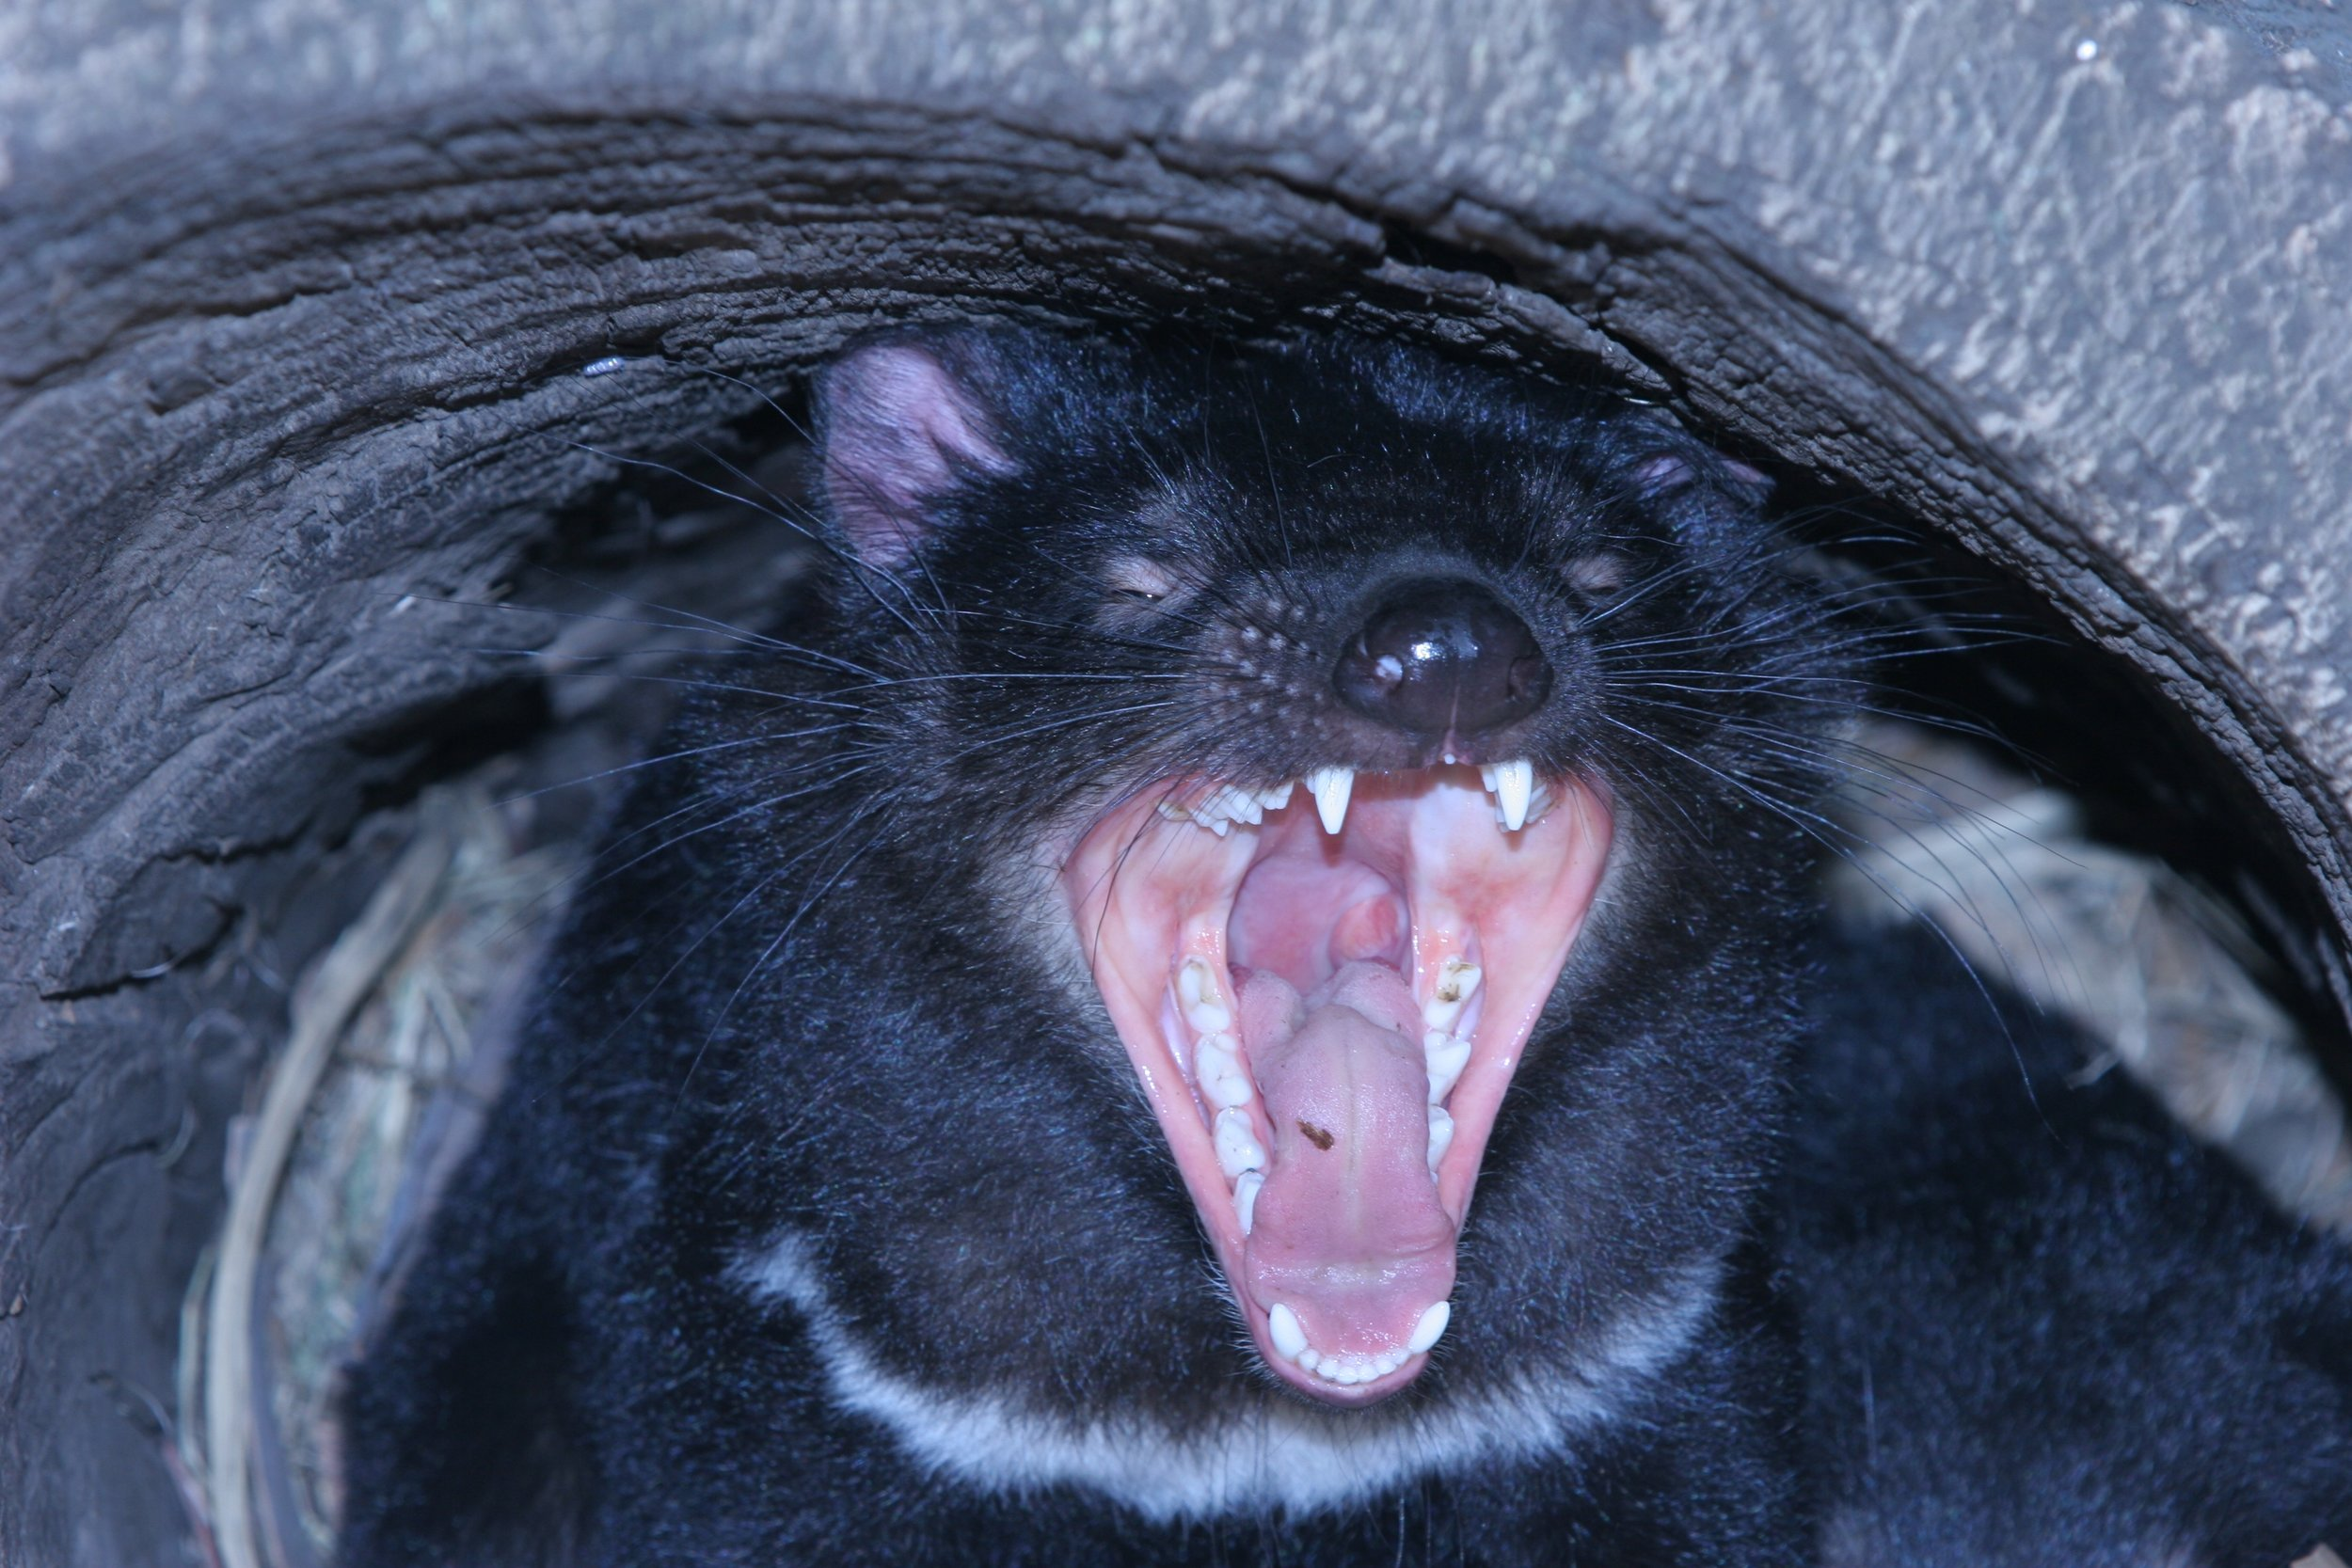 Tasmanian Devil I photographed just as it popped out of a hole in tree.